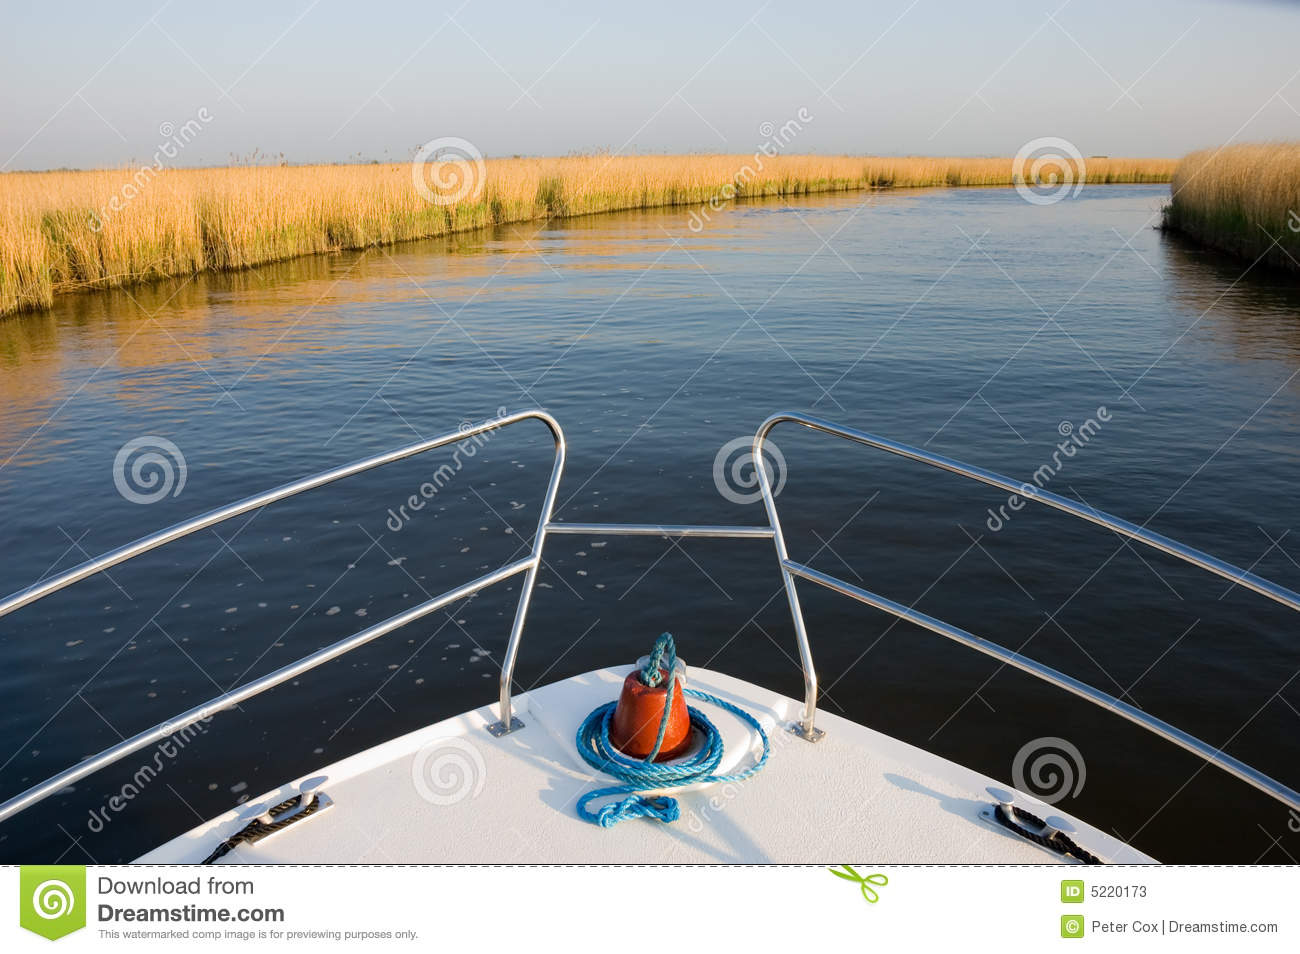 Boat on a River